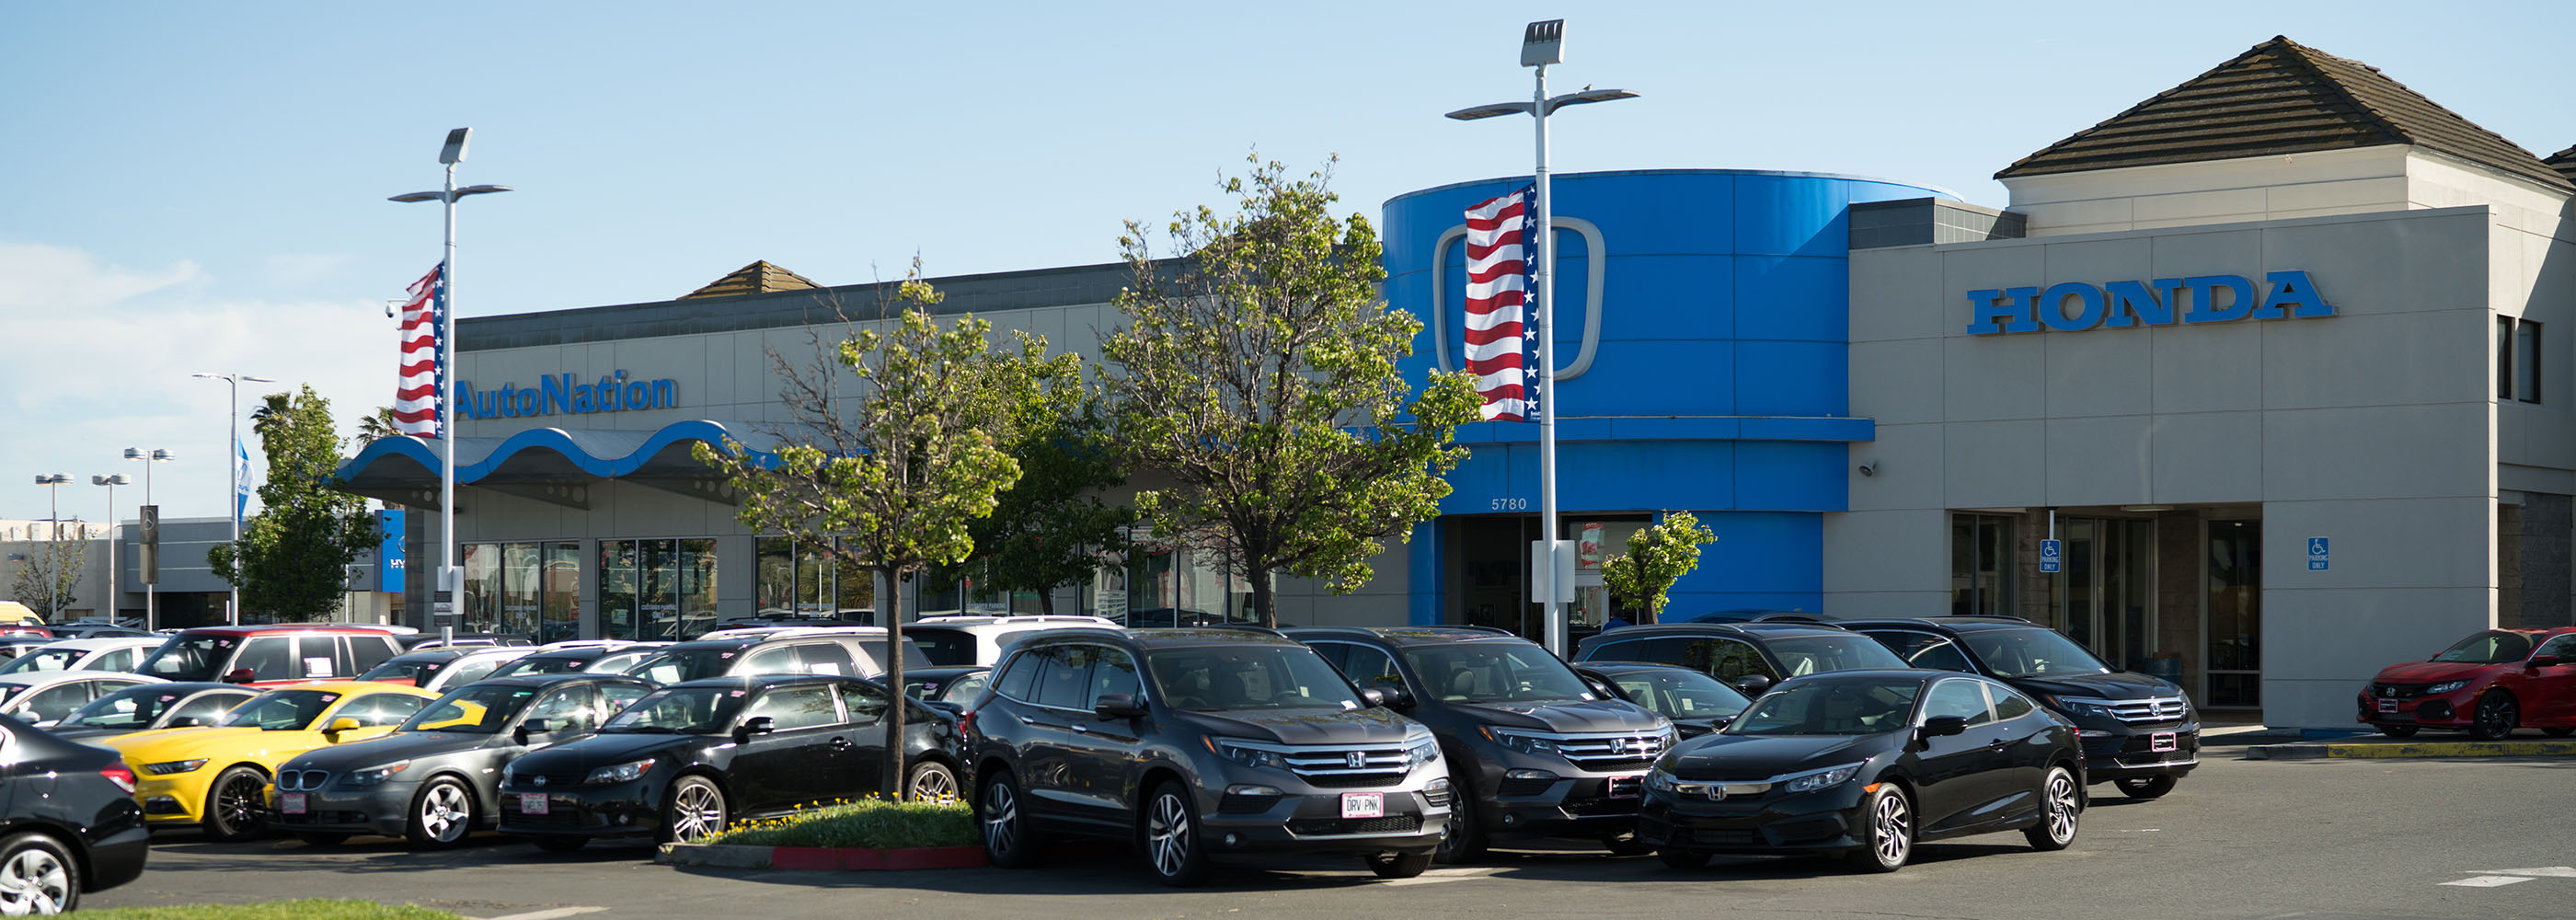 AutoNation Honda Fremont offers Honda sales, service, and parts in Fremont